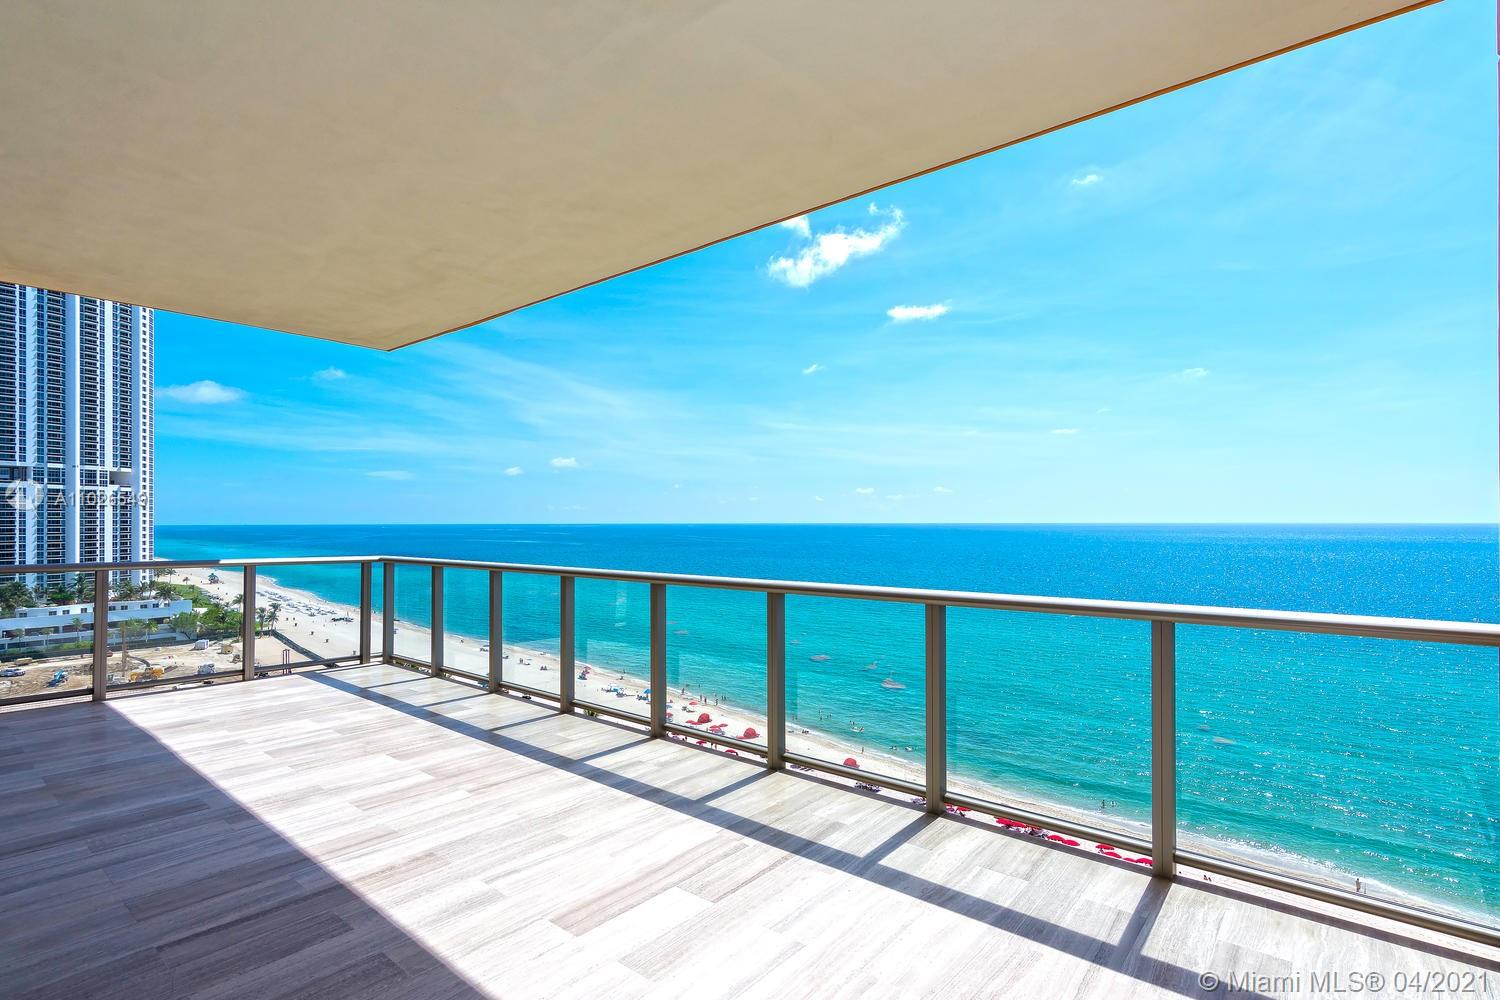 Spectacular corner unit facing ocean and city skyline. This residence features over 4,600 sf flow thru floorplan 3 bedrooms (convertible to 4) + 6.5 bathrooms and 804 sf of deep terraces. Top of the line finishes and appliances - live in like 5 star hotel! Full of amenities with exceptional services! Enjoy sunrise overlooking Acqualina's expansive beachside amenities and sunset from the private waterfall jacuzzi and summer kitchen. 10.6 ft ceilings, Downsview kitchen w/ Miele appliances, gas fireplace, Master suite w/ his/her baths, leather closets, steam showers, Crestron smart climate/light control. Rolls Royce house car, cigar/wine lounge, theatre, spa, hamman, kids room, golf sim, breakfast served daily. Access to Acqualina's 5 star hotel services, ESPA, Il Mulino.